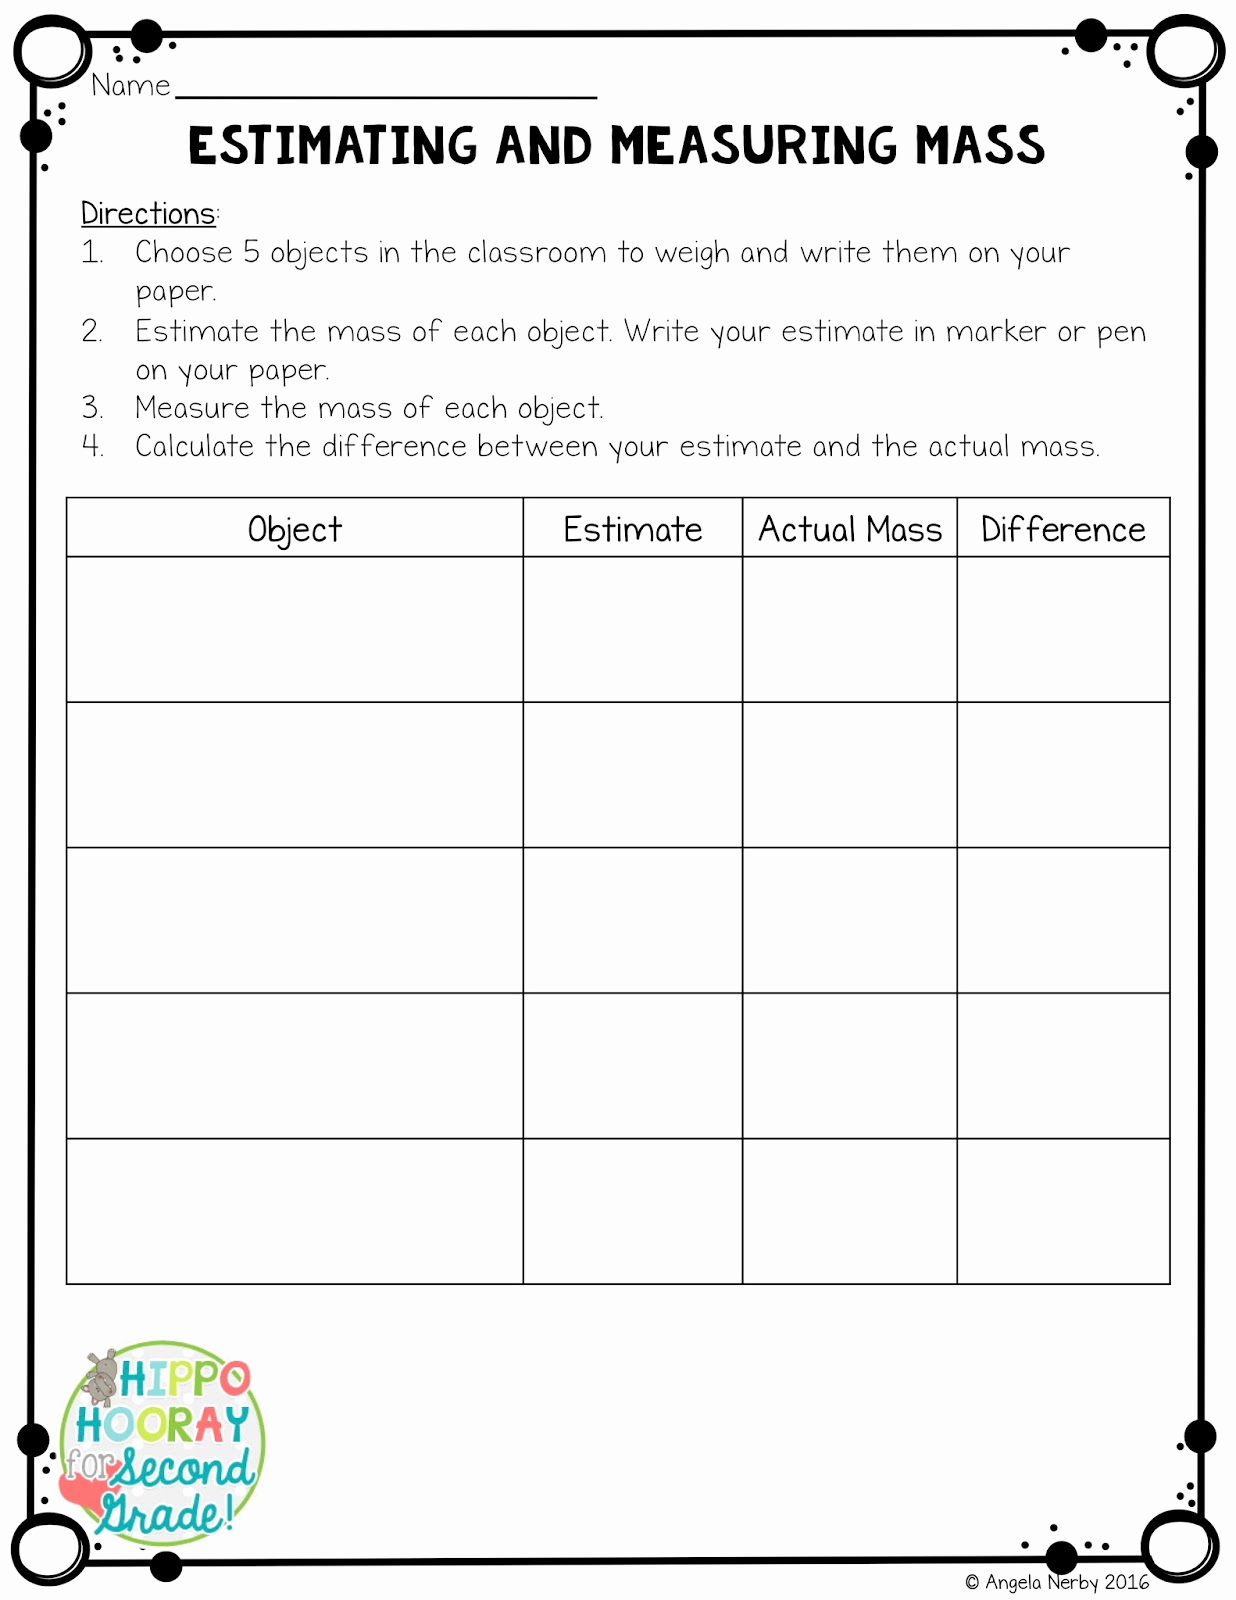 Measurement Estimation Worksheets Awesome Iteach Third Mass Made Easy Strategies for Teaching